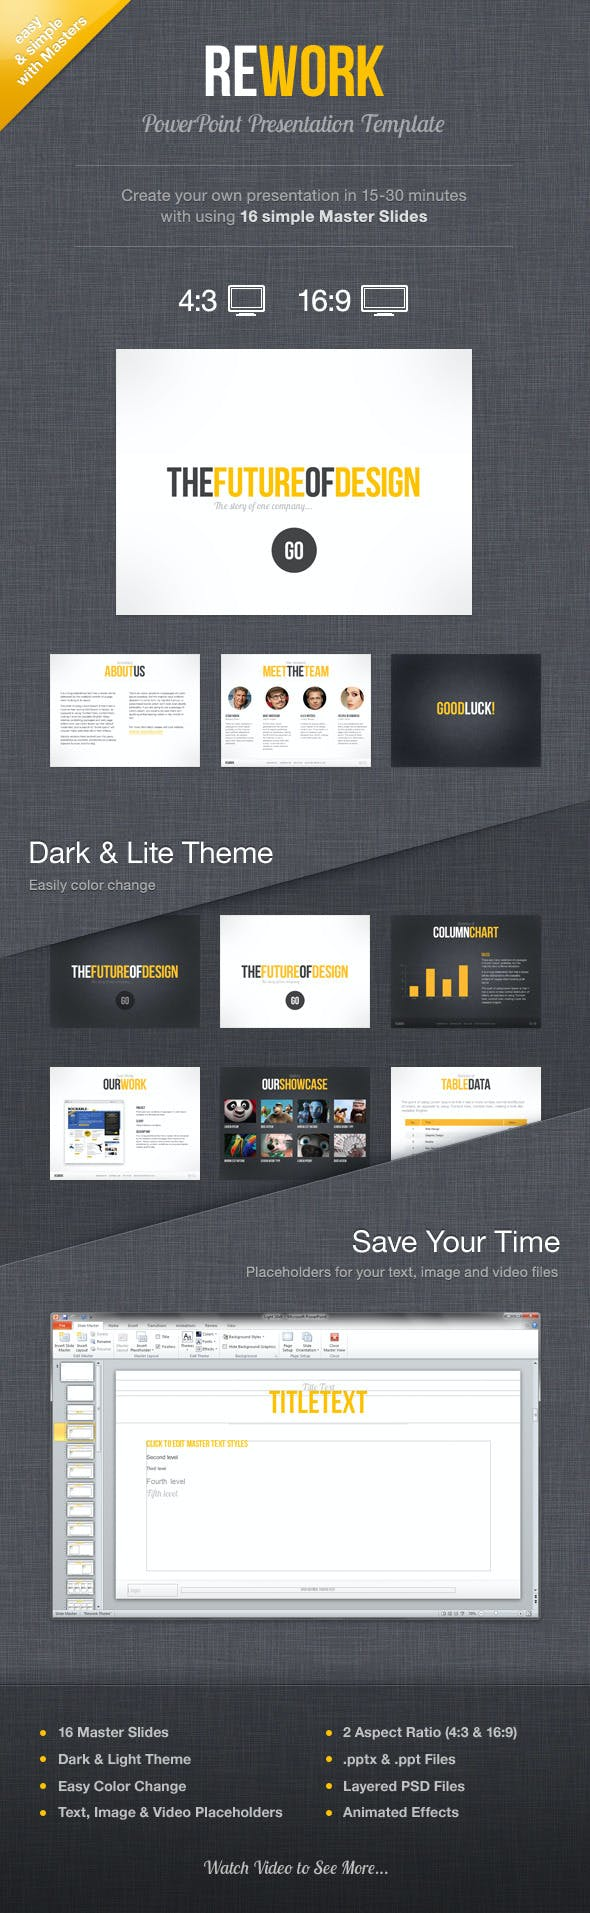 rework powerpoint presentation template by mird graphicriver